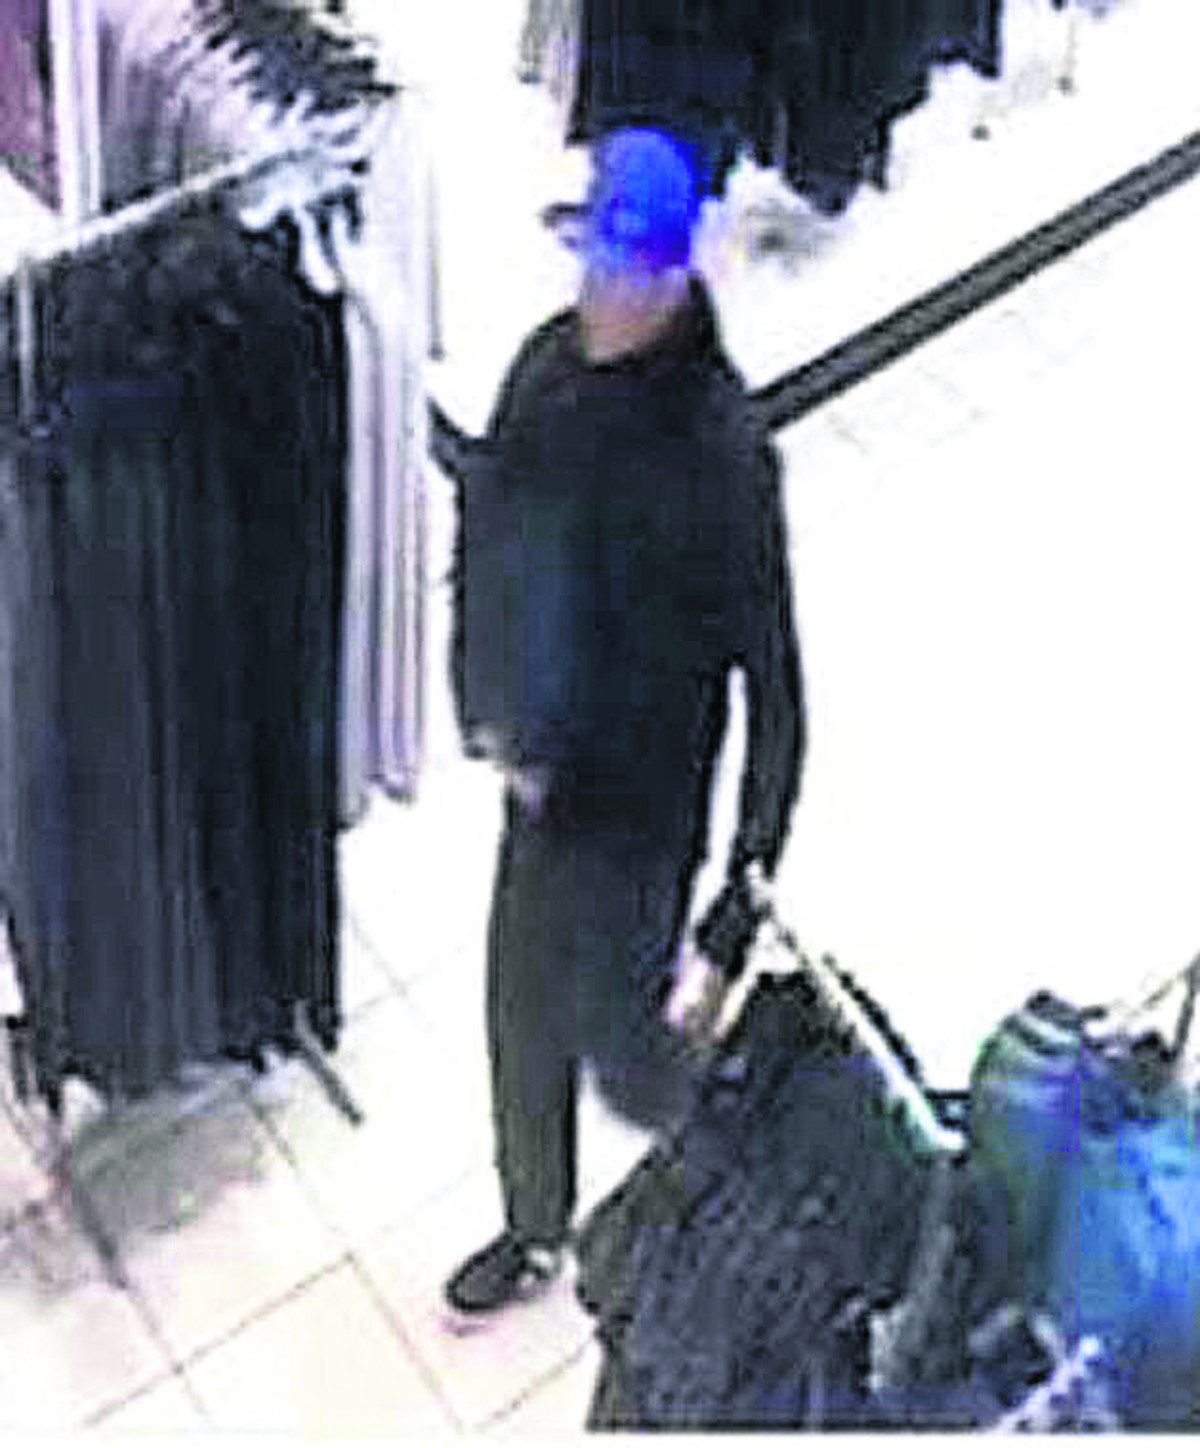 Do you know this shoplifter?